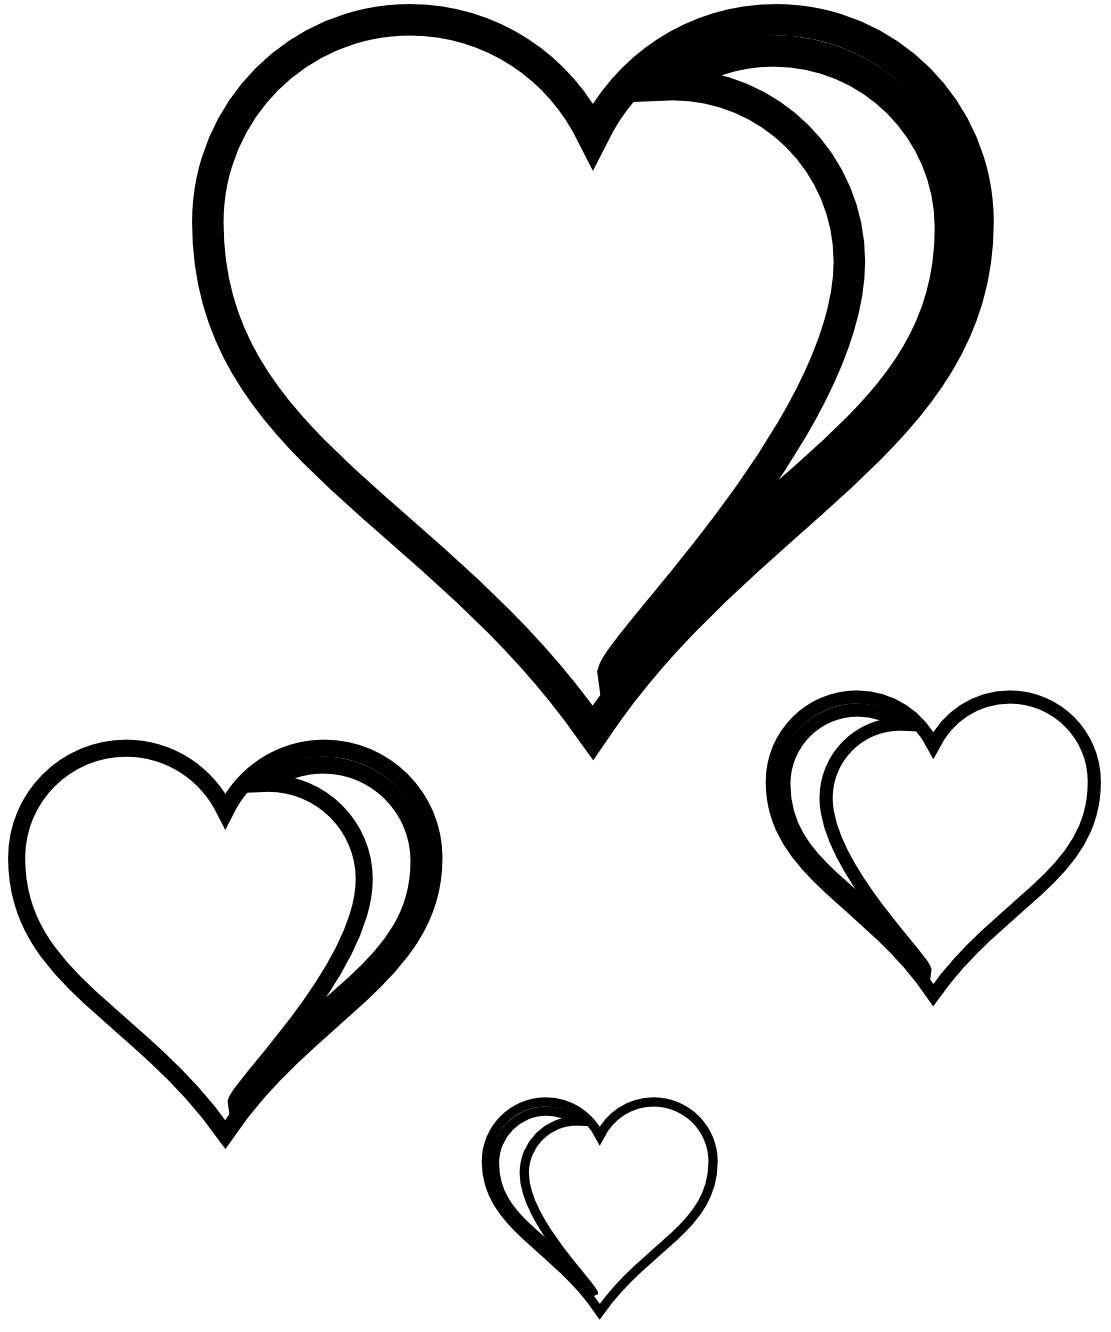 Free Hearts Black And White, Download Free Clip Art, Free.